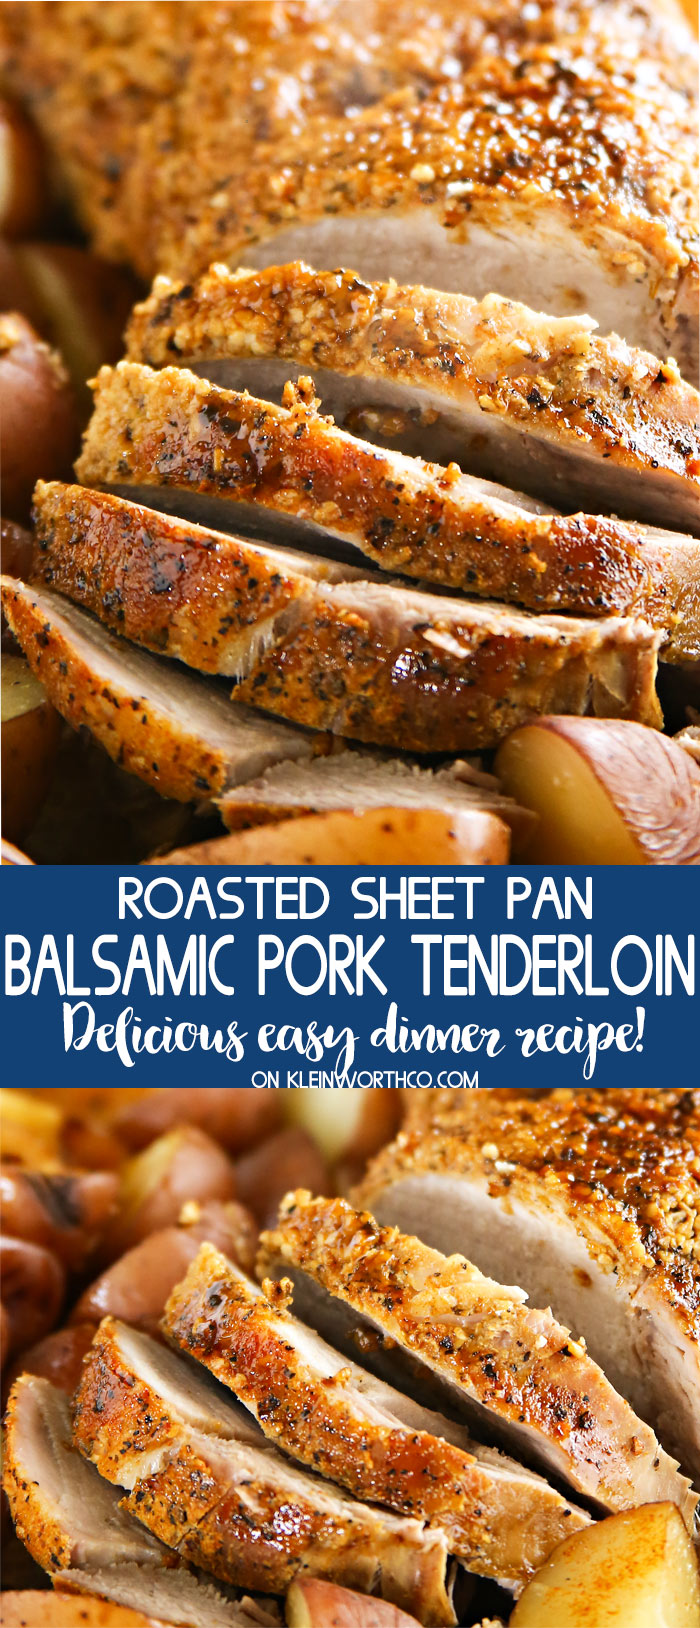 Roasted Sheet Pan Balsamic Pork Tenderloin recipe